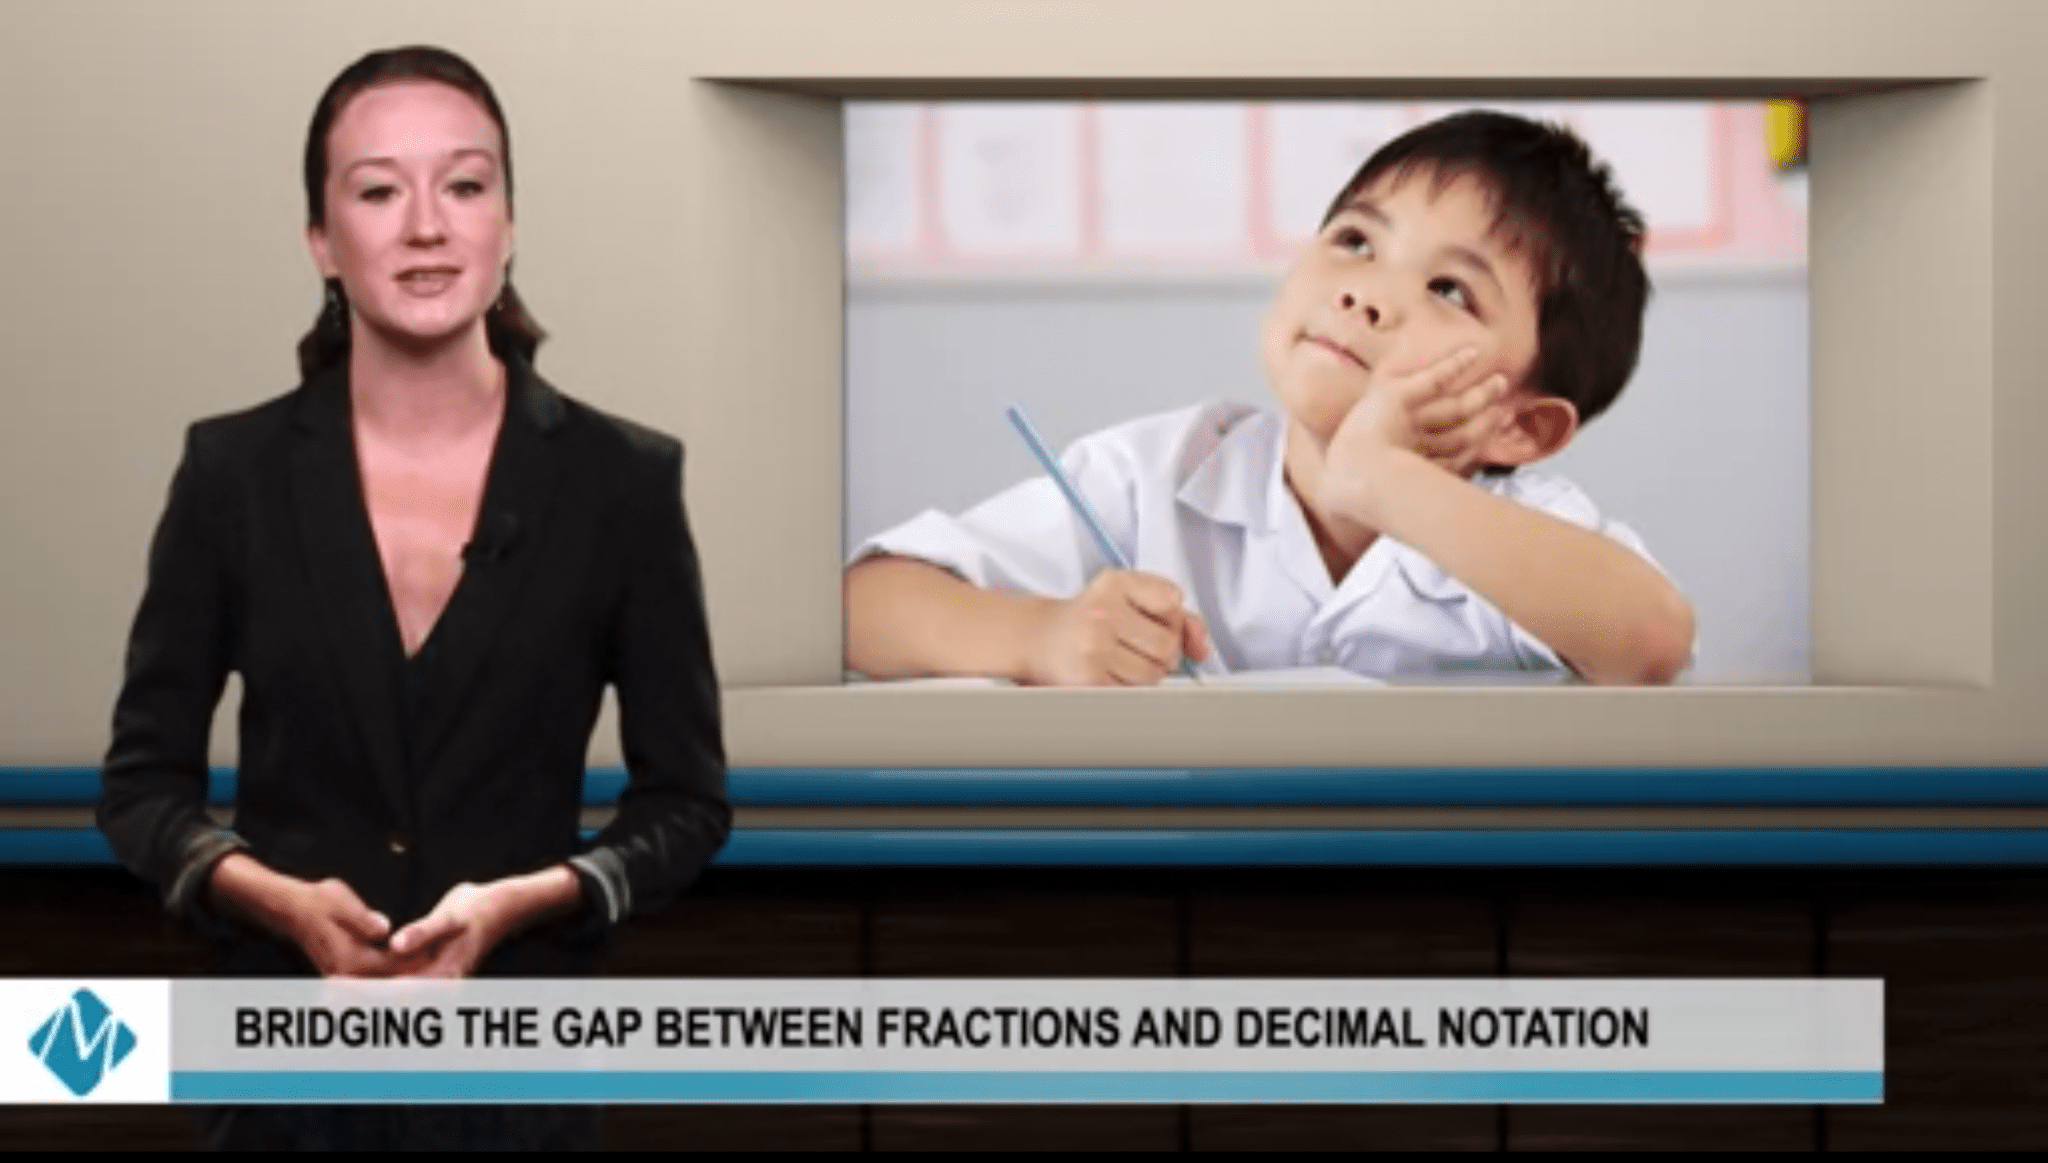 woman in black suit next to image of young math student | bridging the gab between fractions and decimal notation